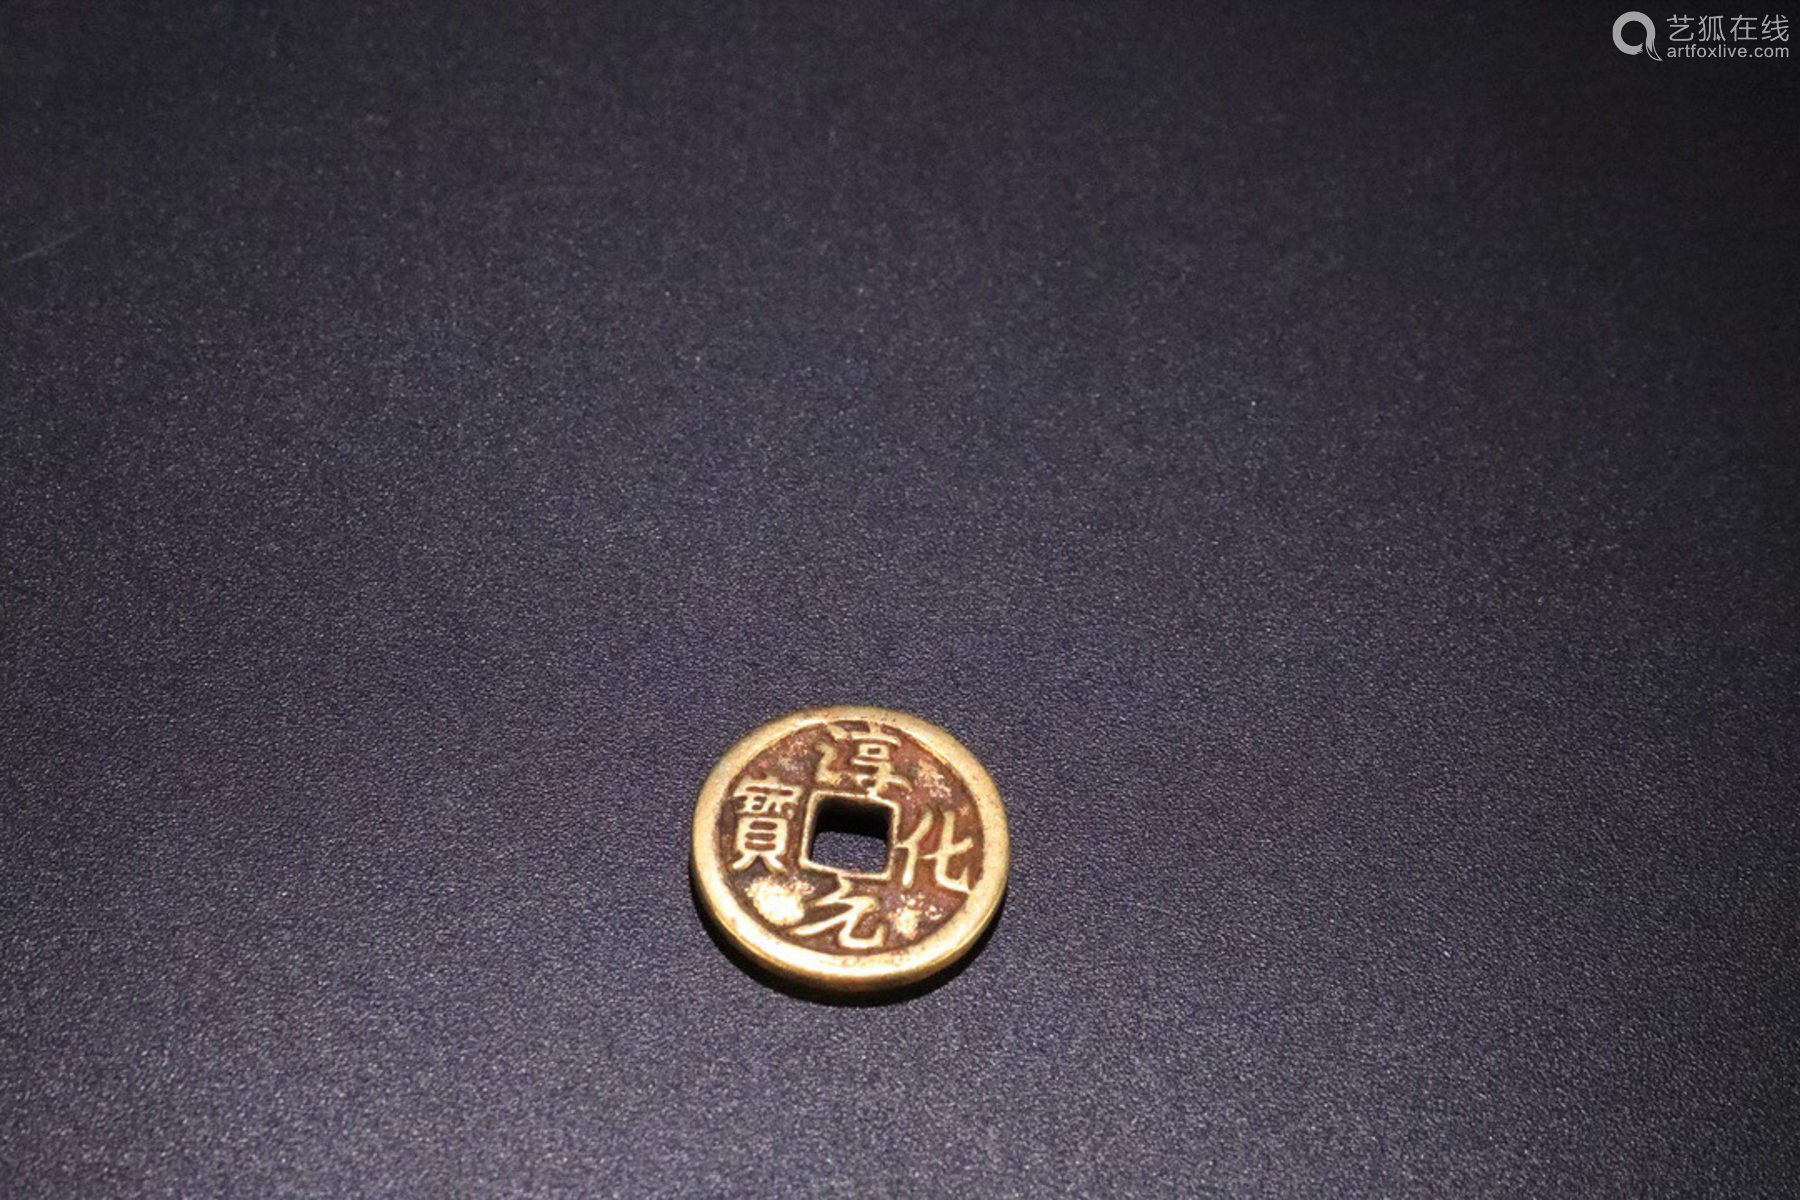 10-12TH CENTURY, A PURE GOLD COIN , NORTHERN SONG DYNASTY